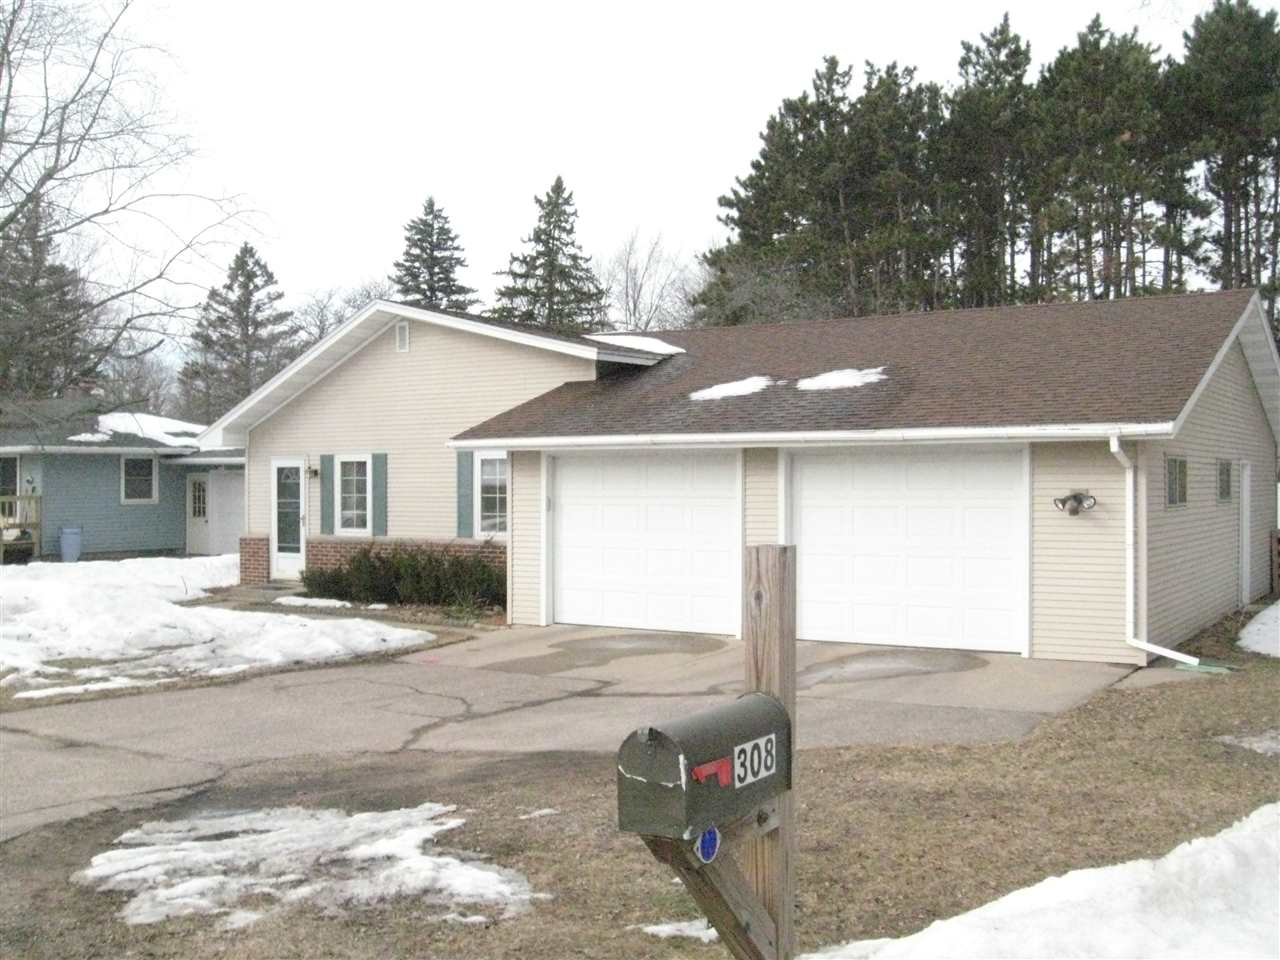 real estate for elm street stevens point wi  view photo slide show 20 20 photo